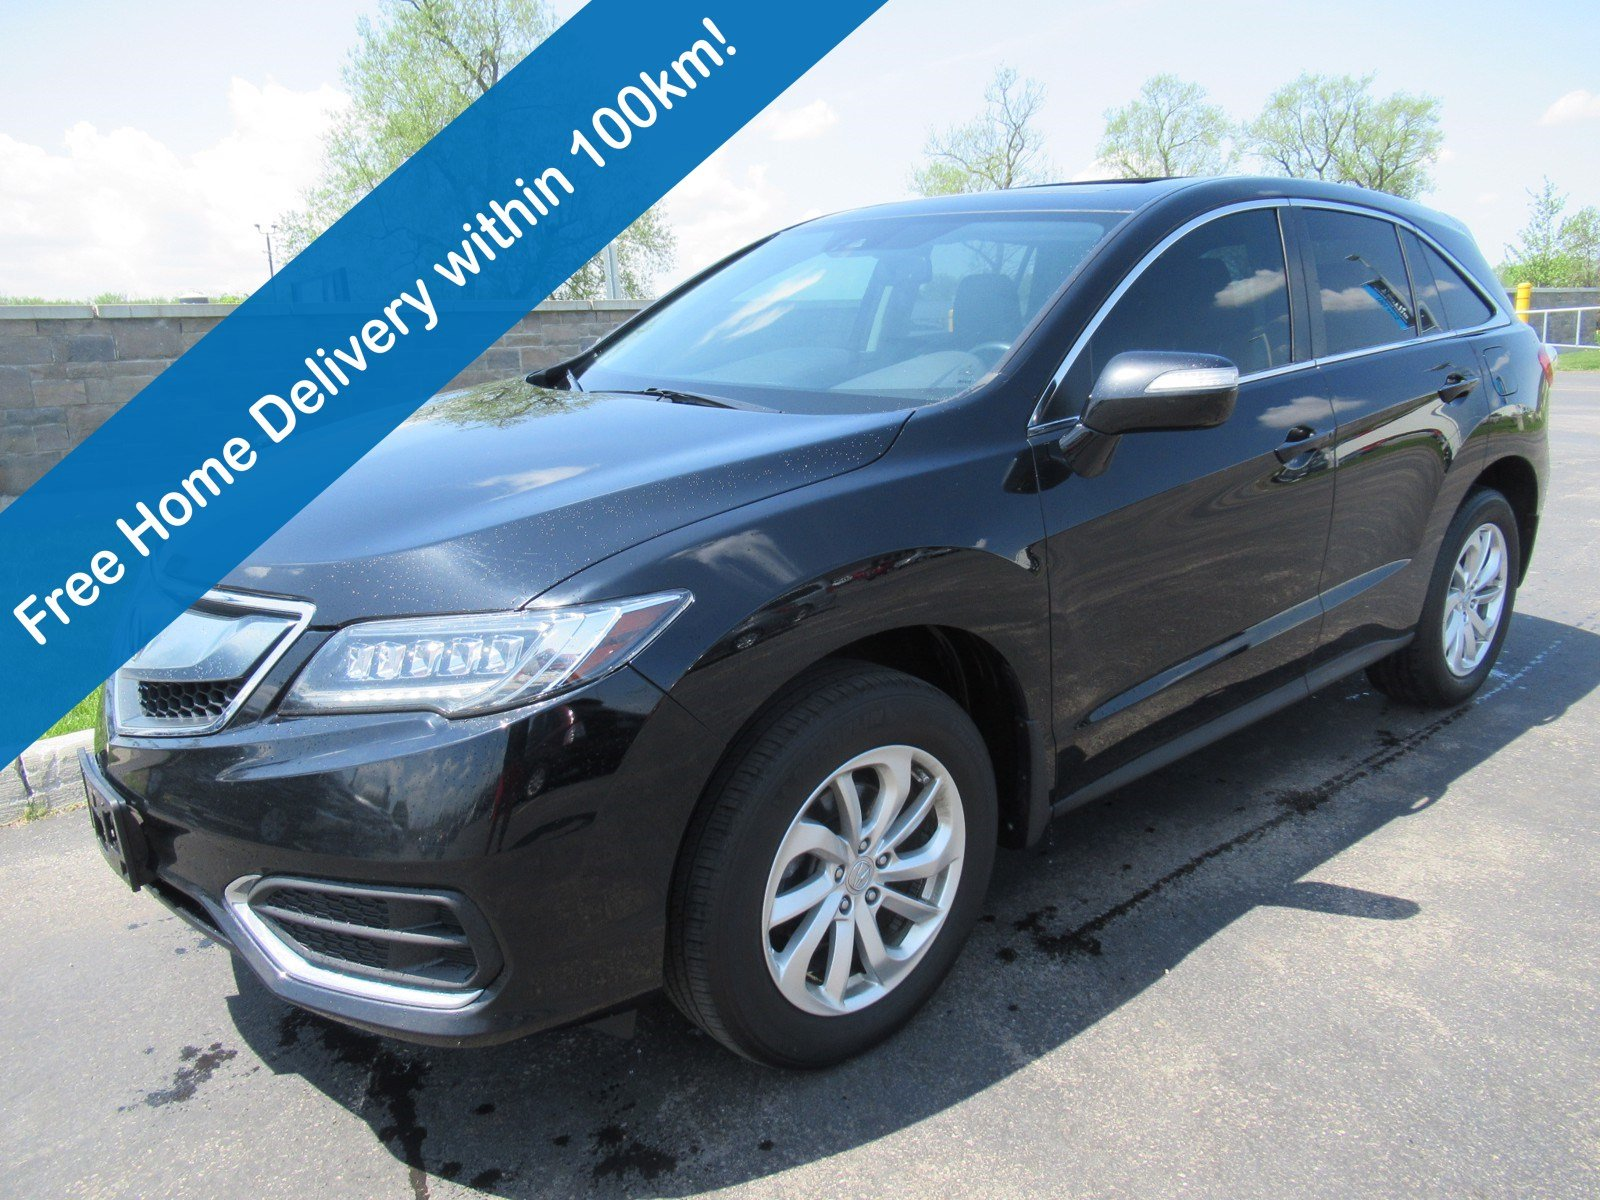 Certified Pre-Owned 2017 Acura RDX Tech Pkg AWD, Navigation, Leather, Sunroof, Memory Seat & Much More!